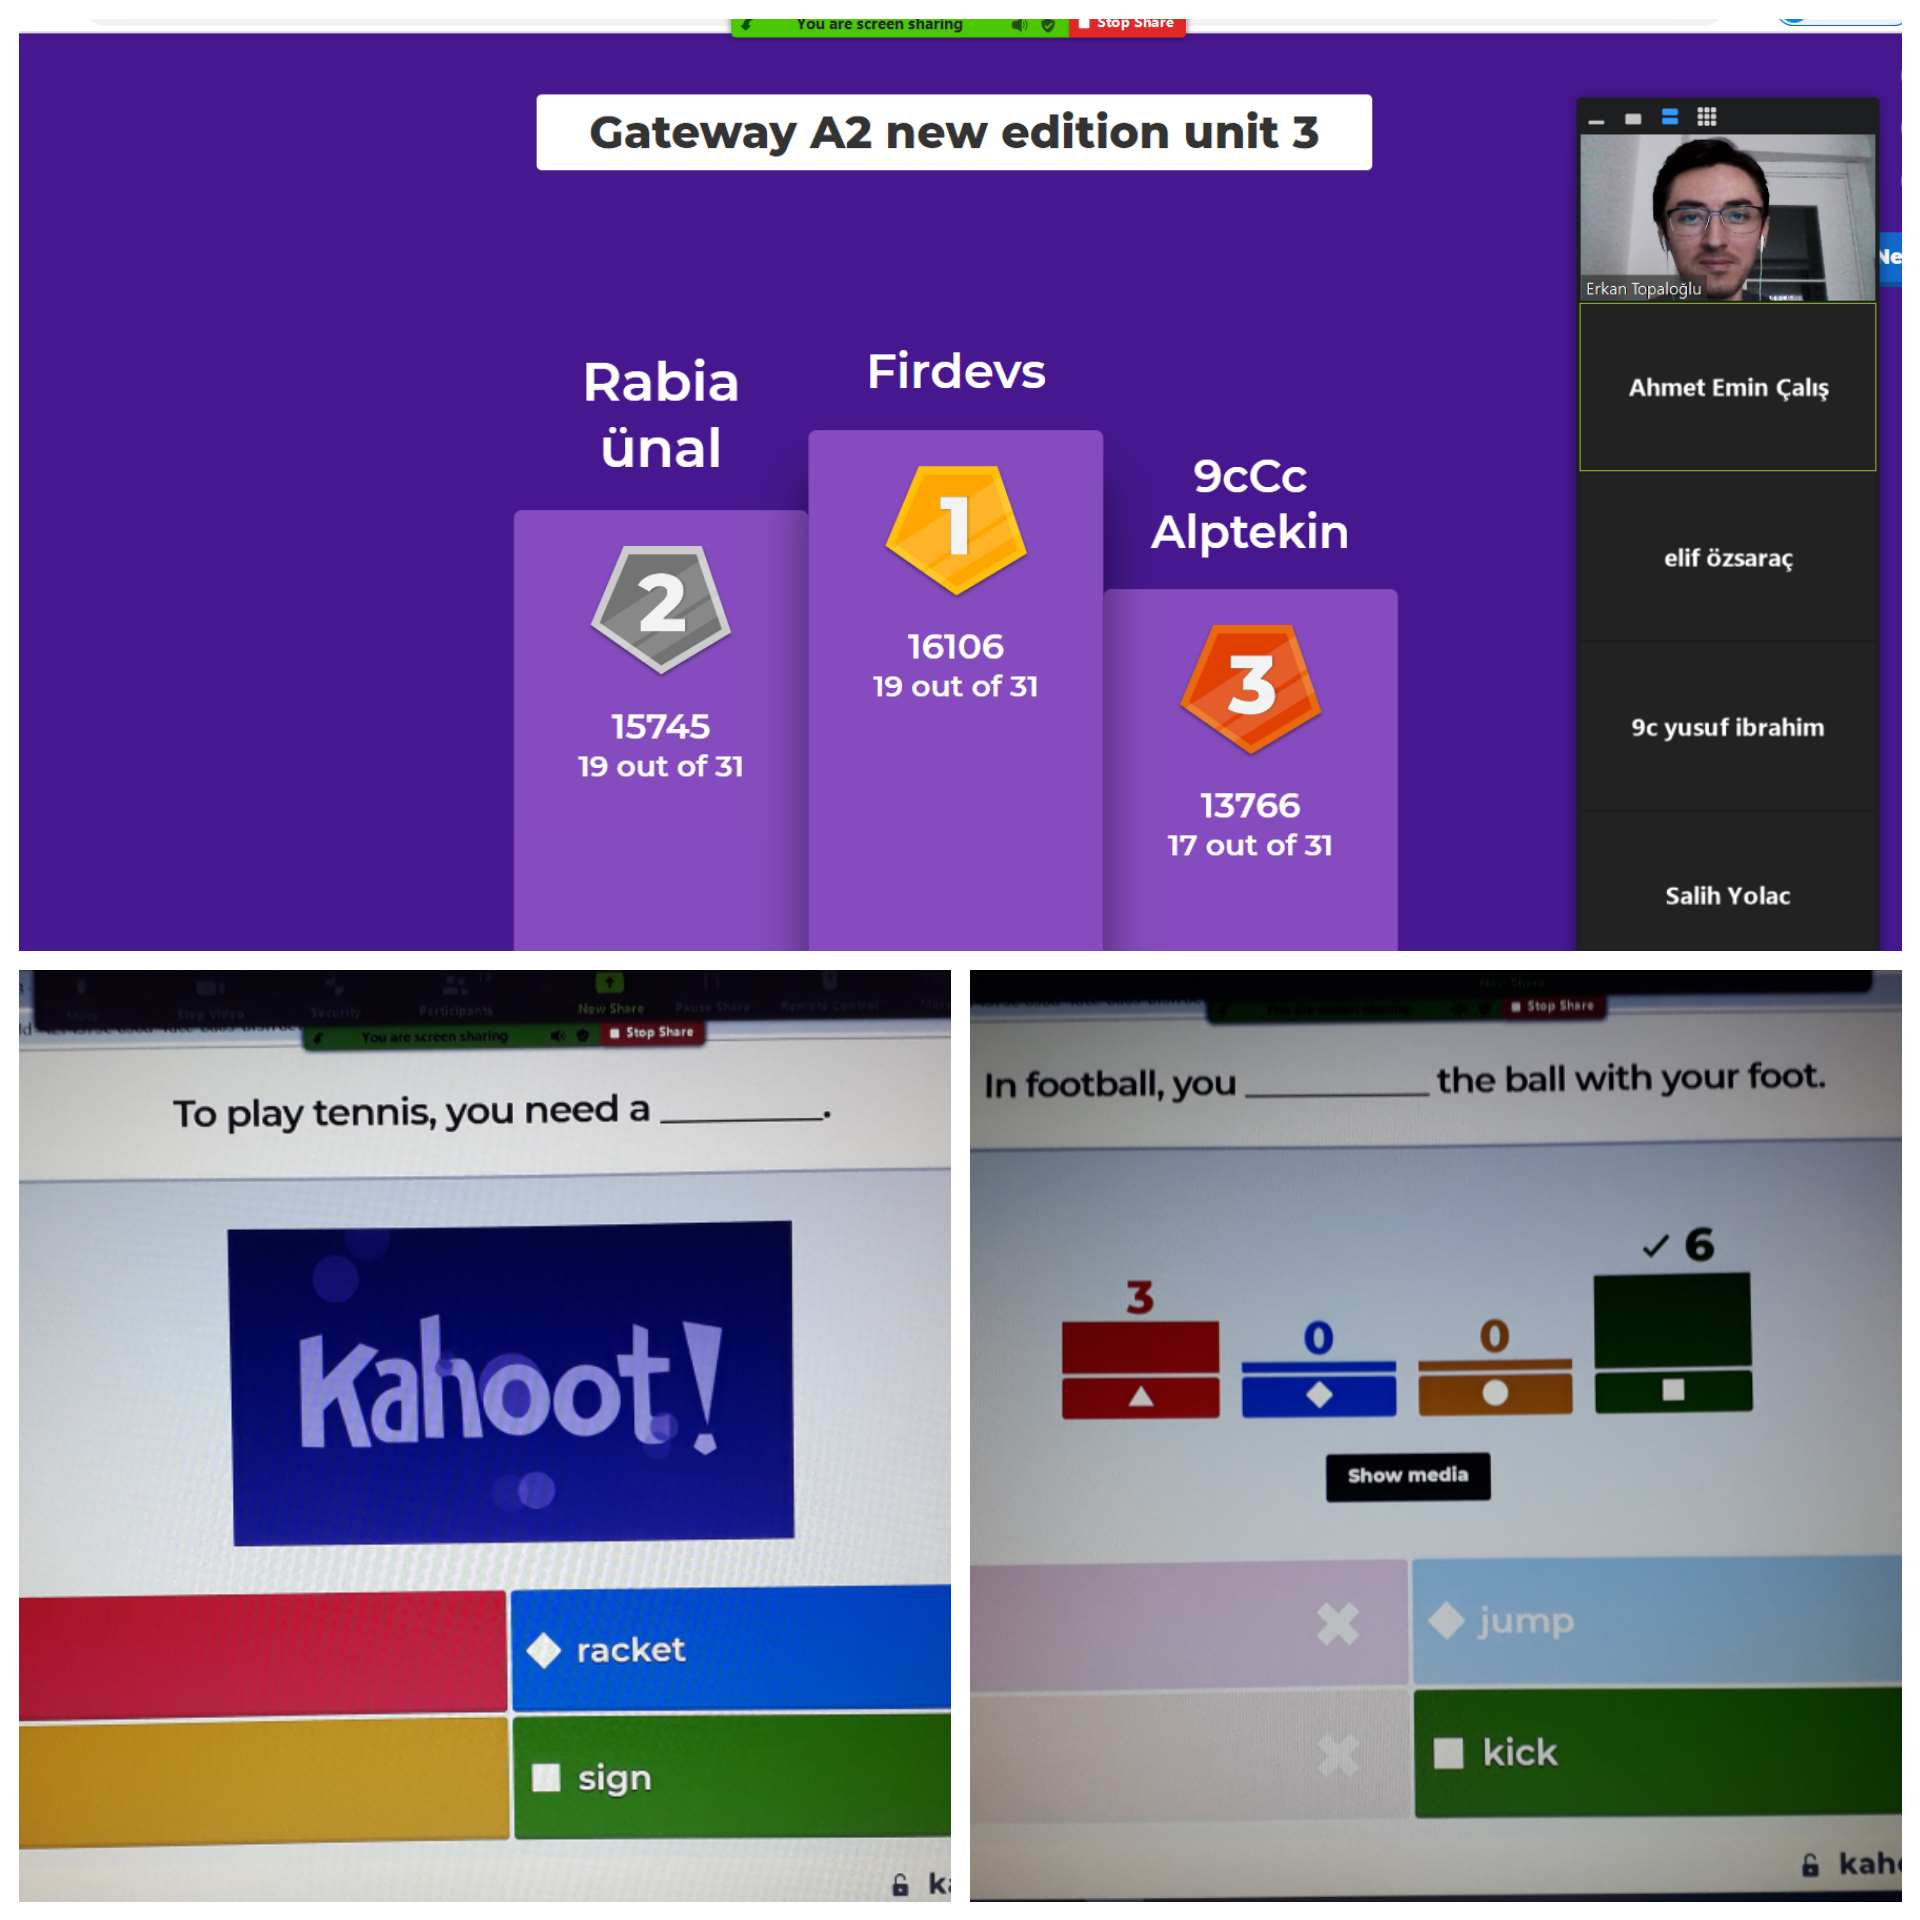 KAHOOT ACTIVITY WITH THE 9TH GRADERS